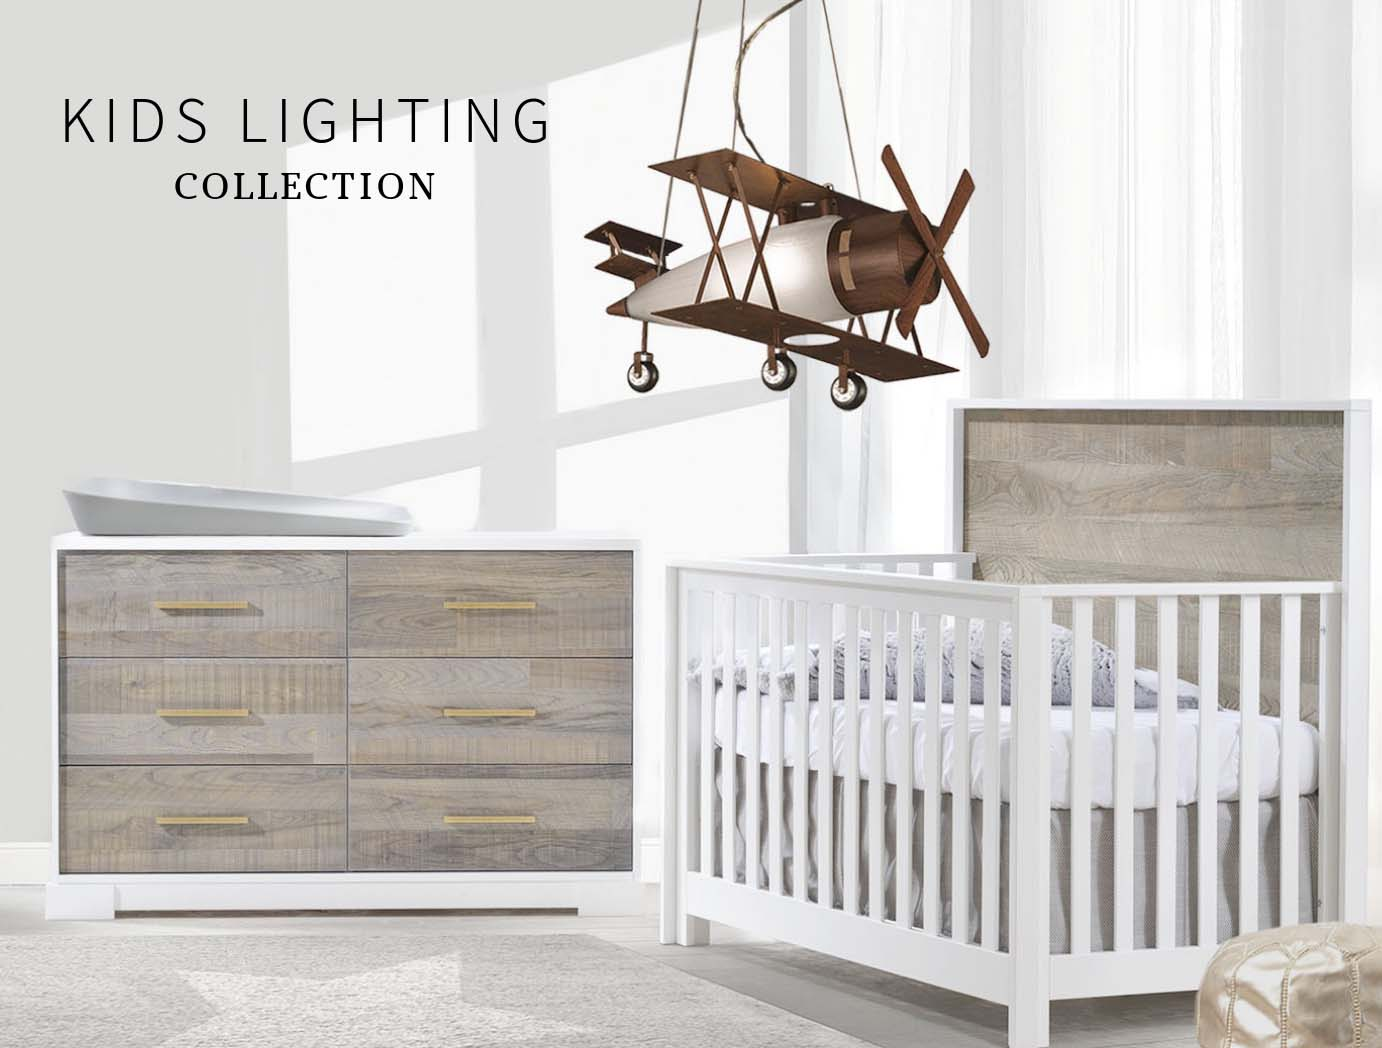 See all kids lighting products cover image